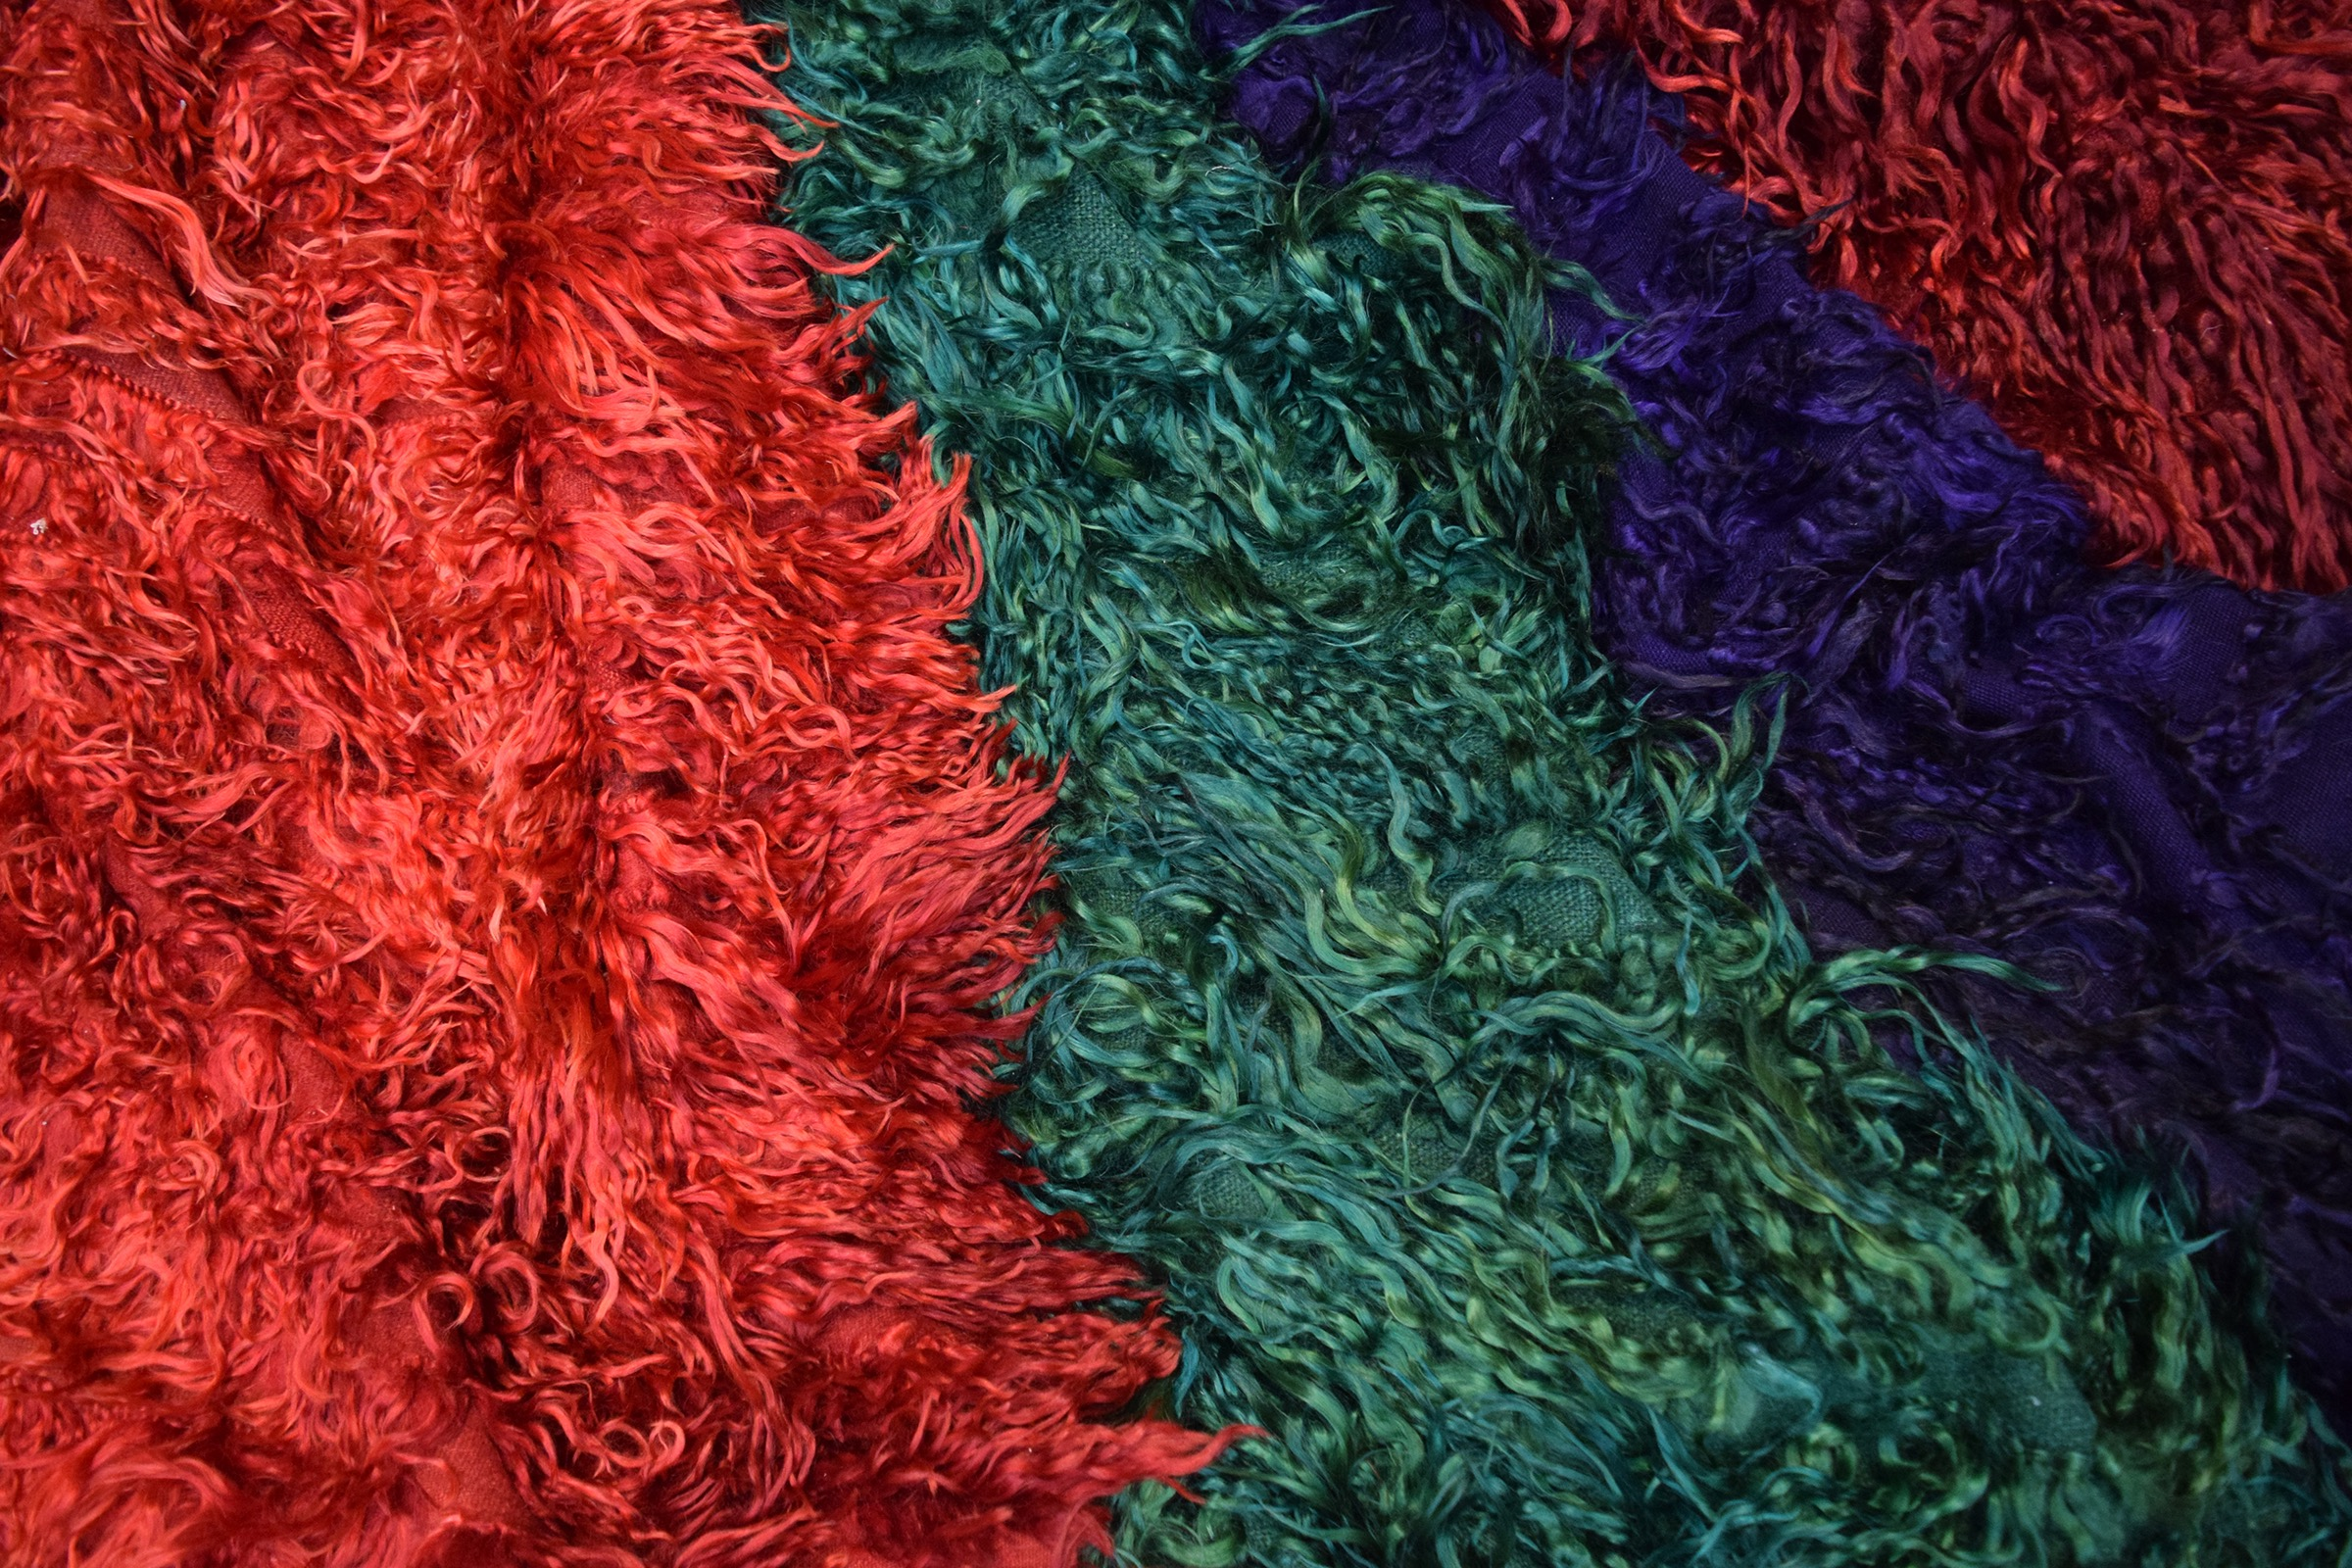 Group of Rugs detail 1